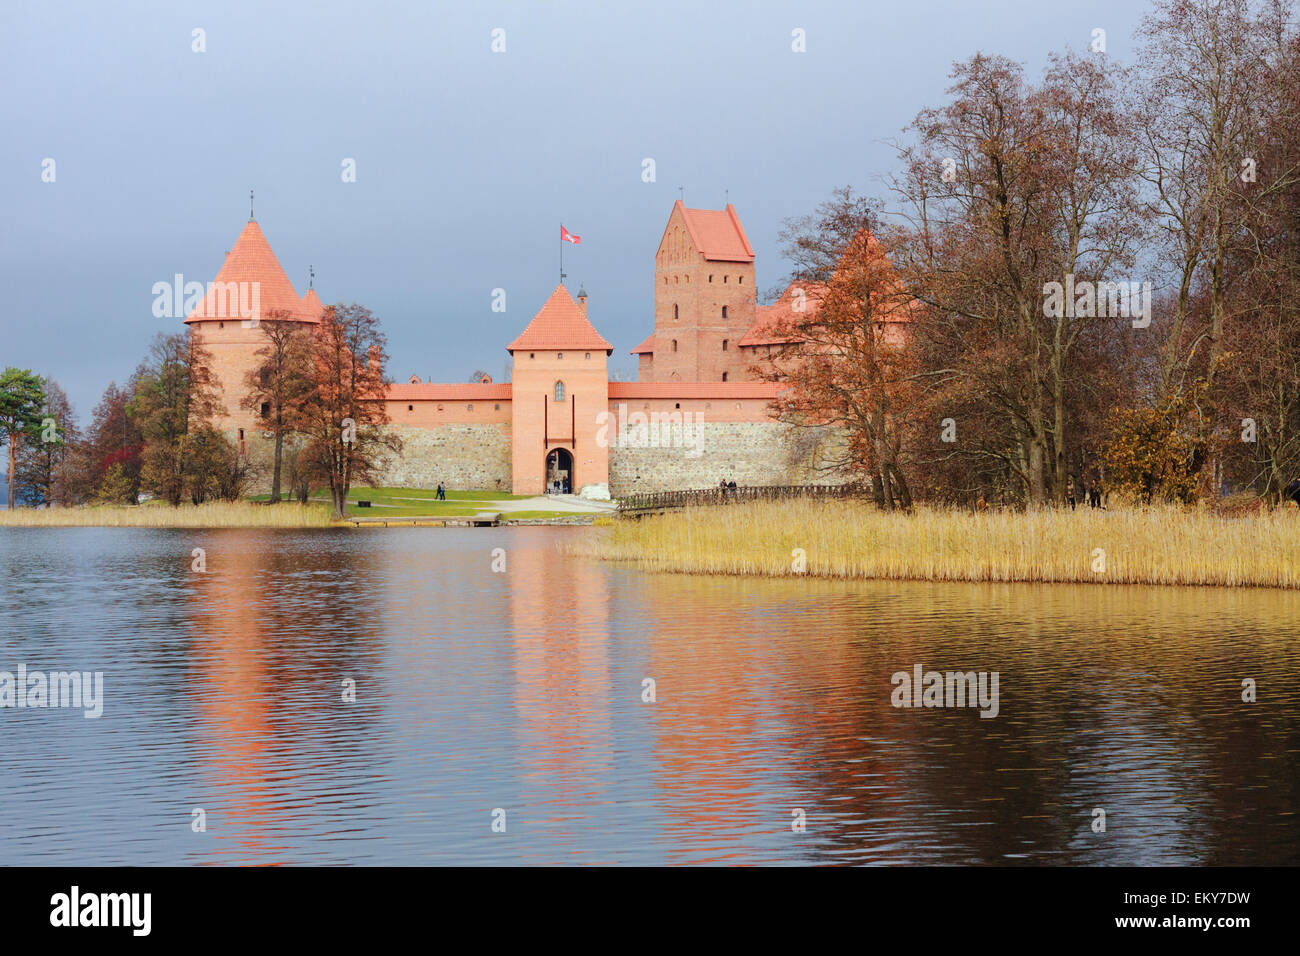 Trakai castle and lake, Lithuania - Stock Image